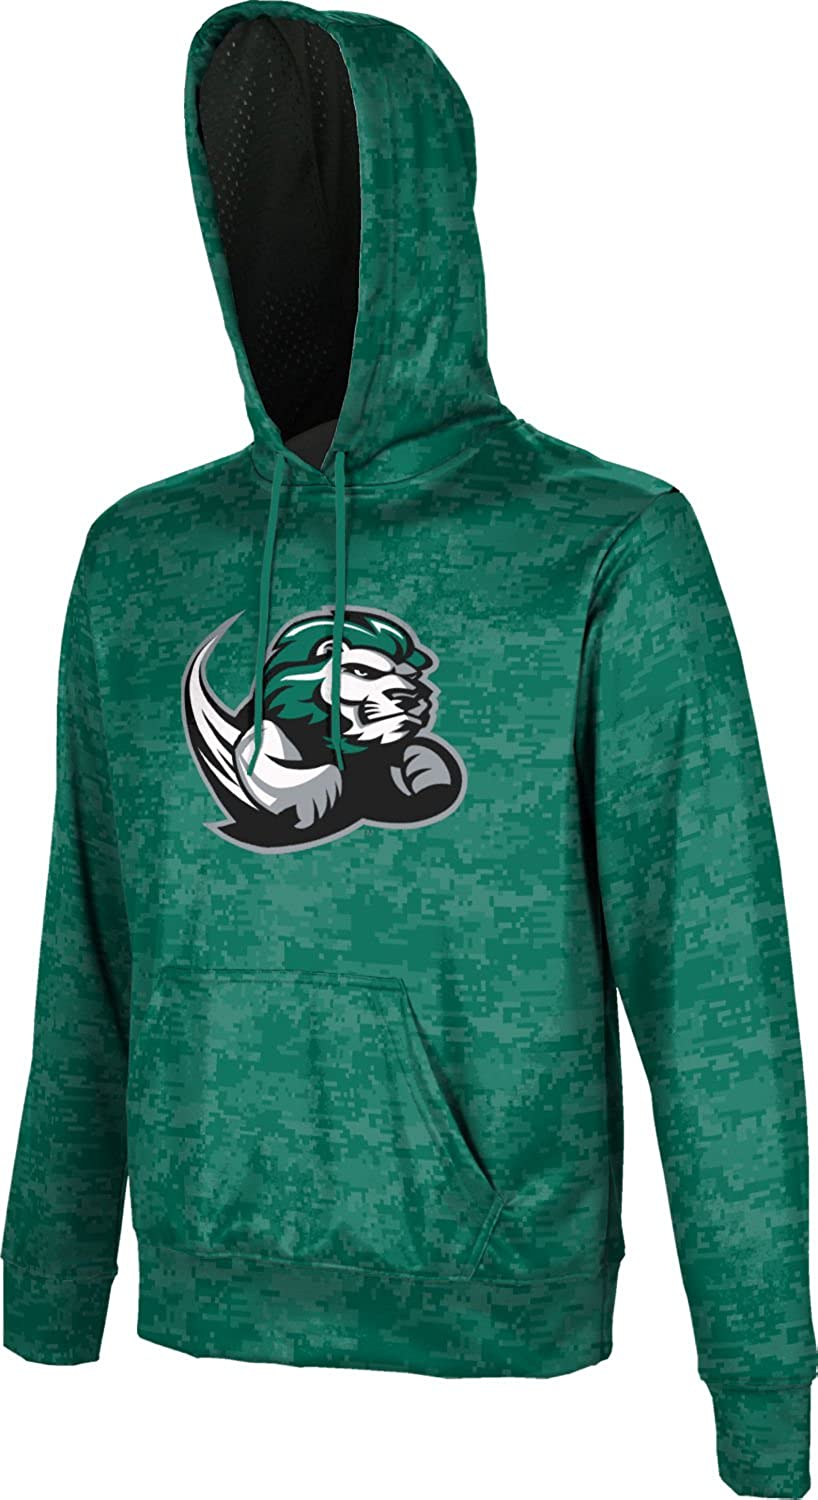 Digital ProSphere Slippery Rock University Boys Hoodie Sweatshirt